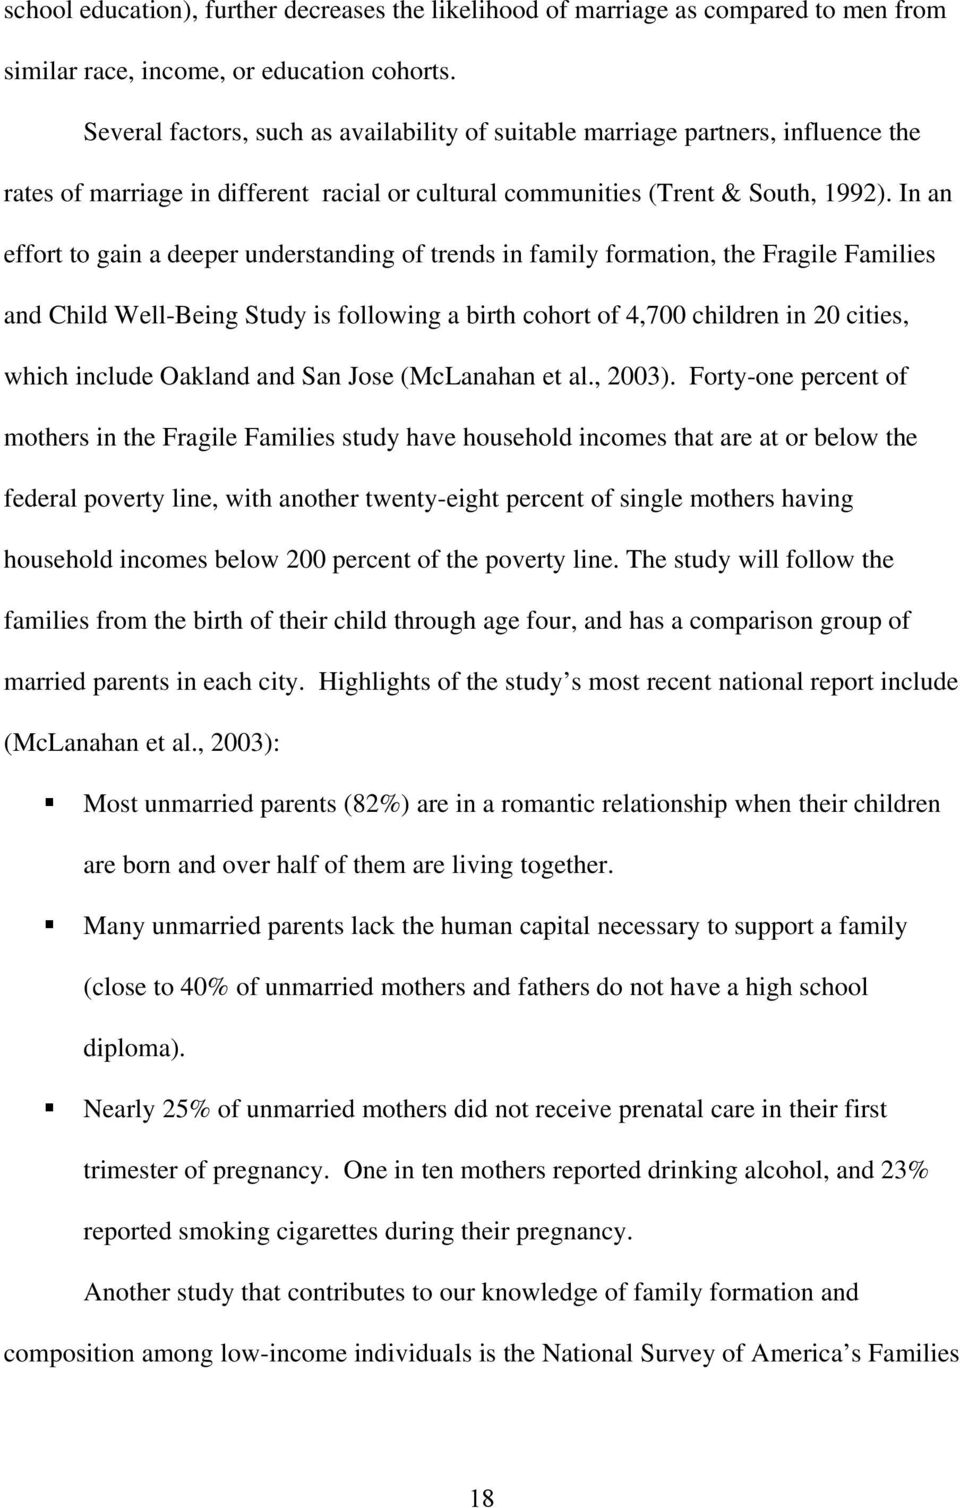 In an effort to gain a deeper understanding of trends in family formation, the Fragile Families and Child Well-Being Study is following a birth cohort of 4,700 children in 20 cities, which include